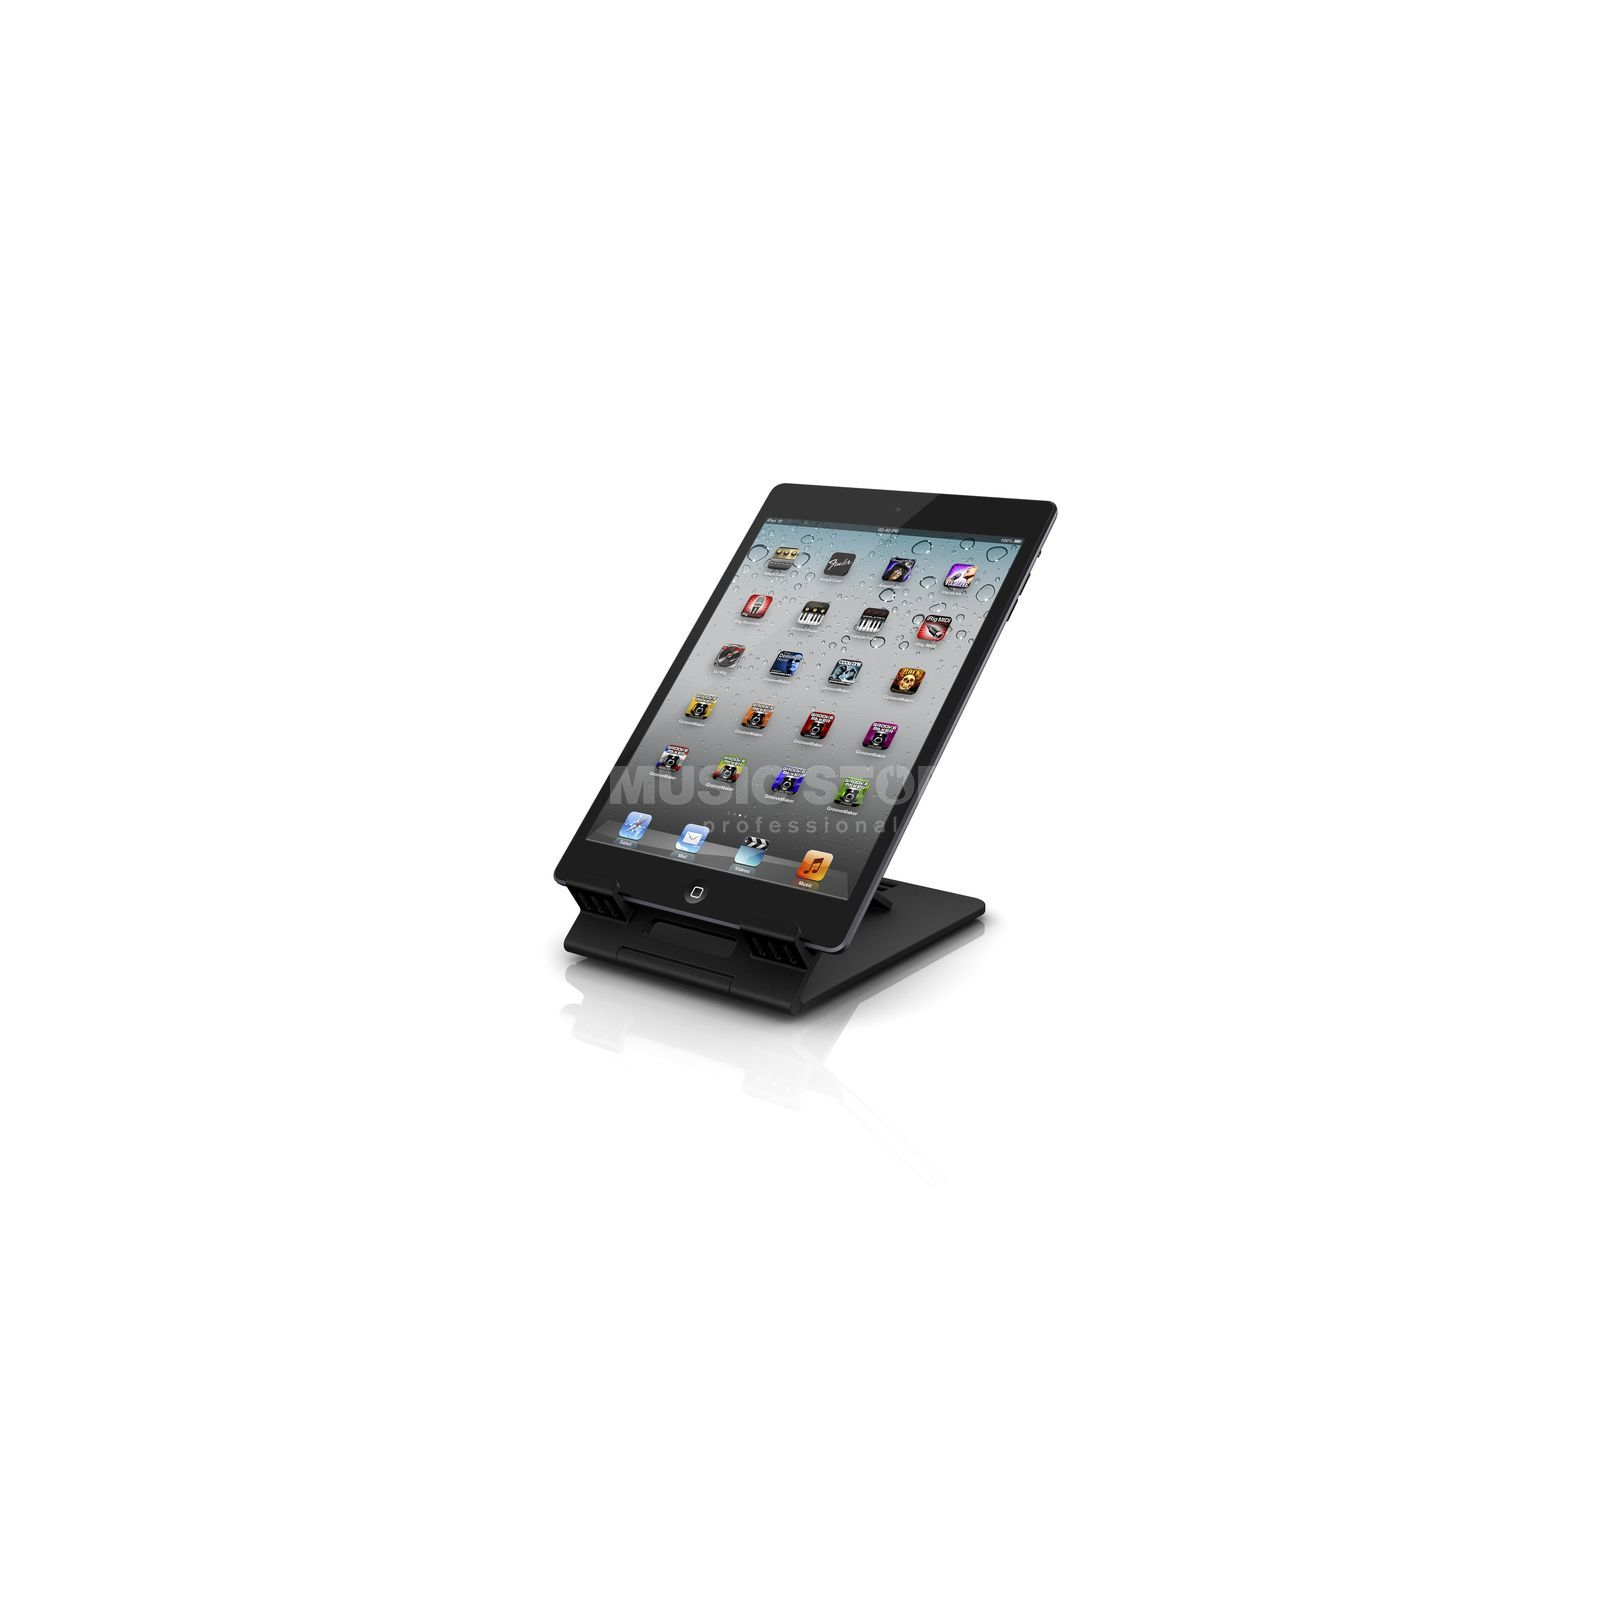 IK Multimedia iKlip Studio for iPad mini Desktop Stand for iPad mini Produktbillede